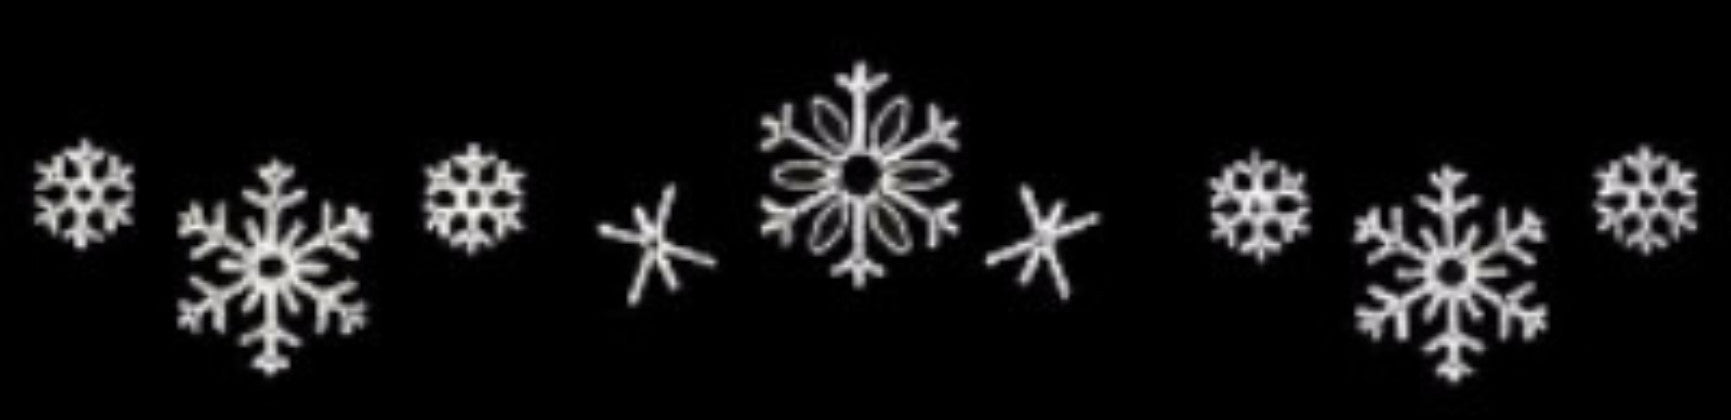 LED Snowflake Skyline Decoration – Pure White – 24 Ft, Aluminum LED